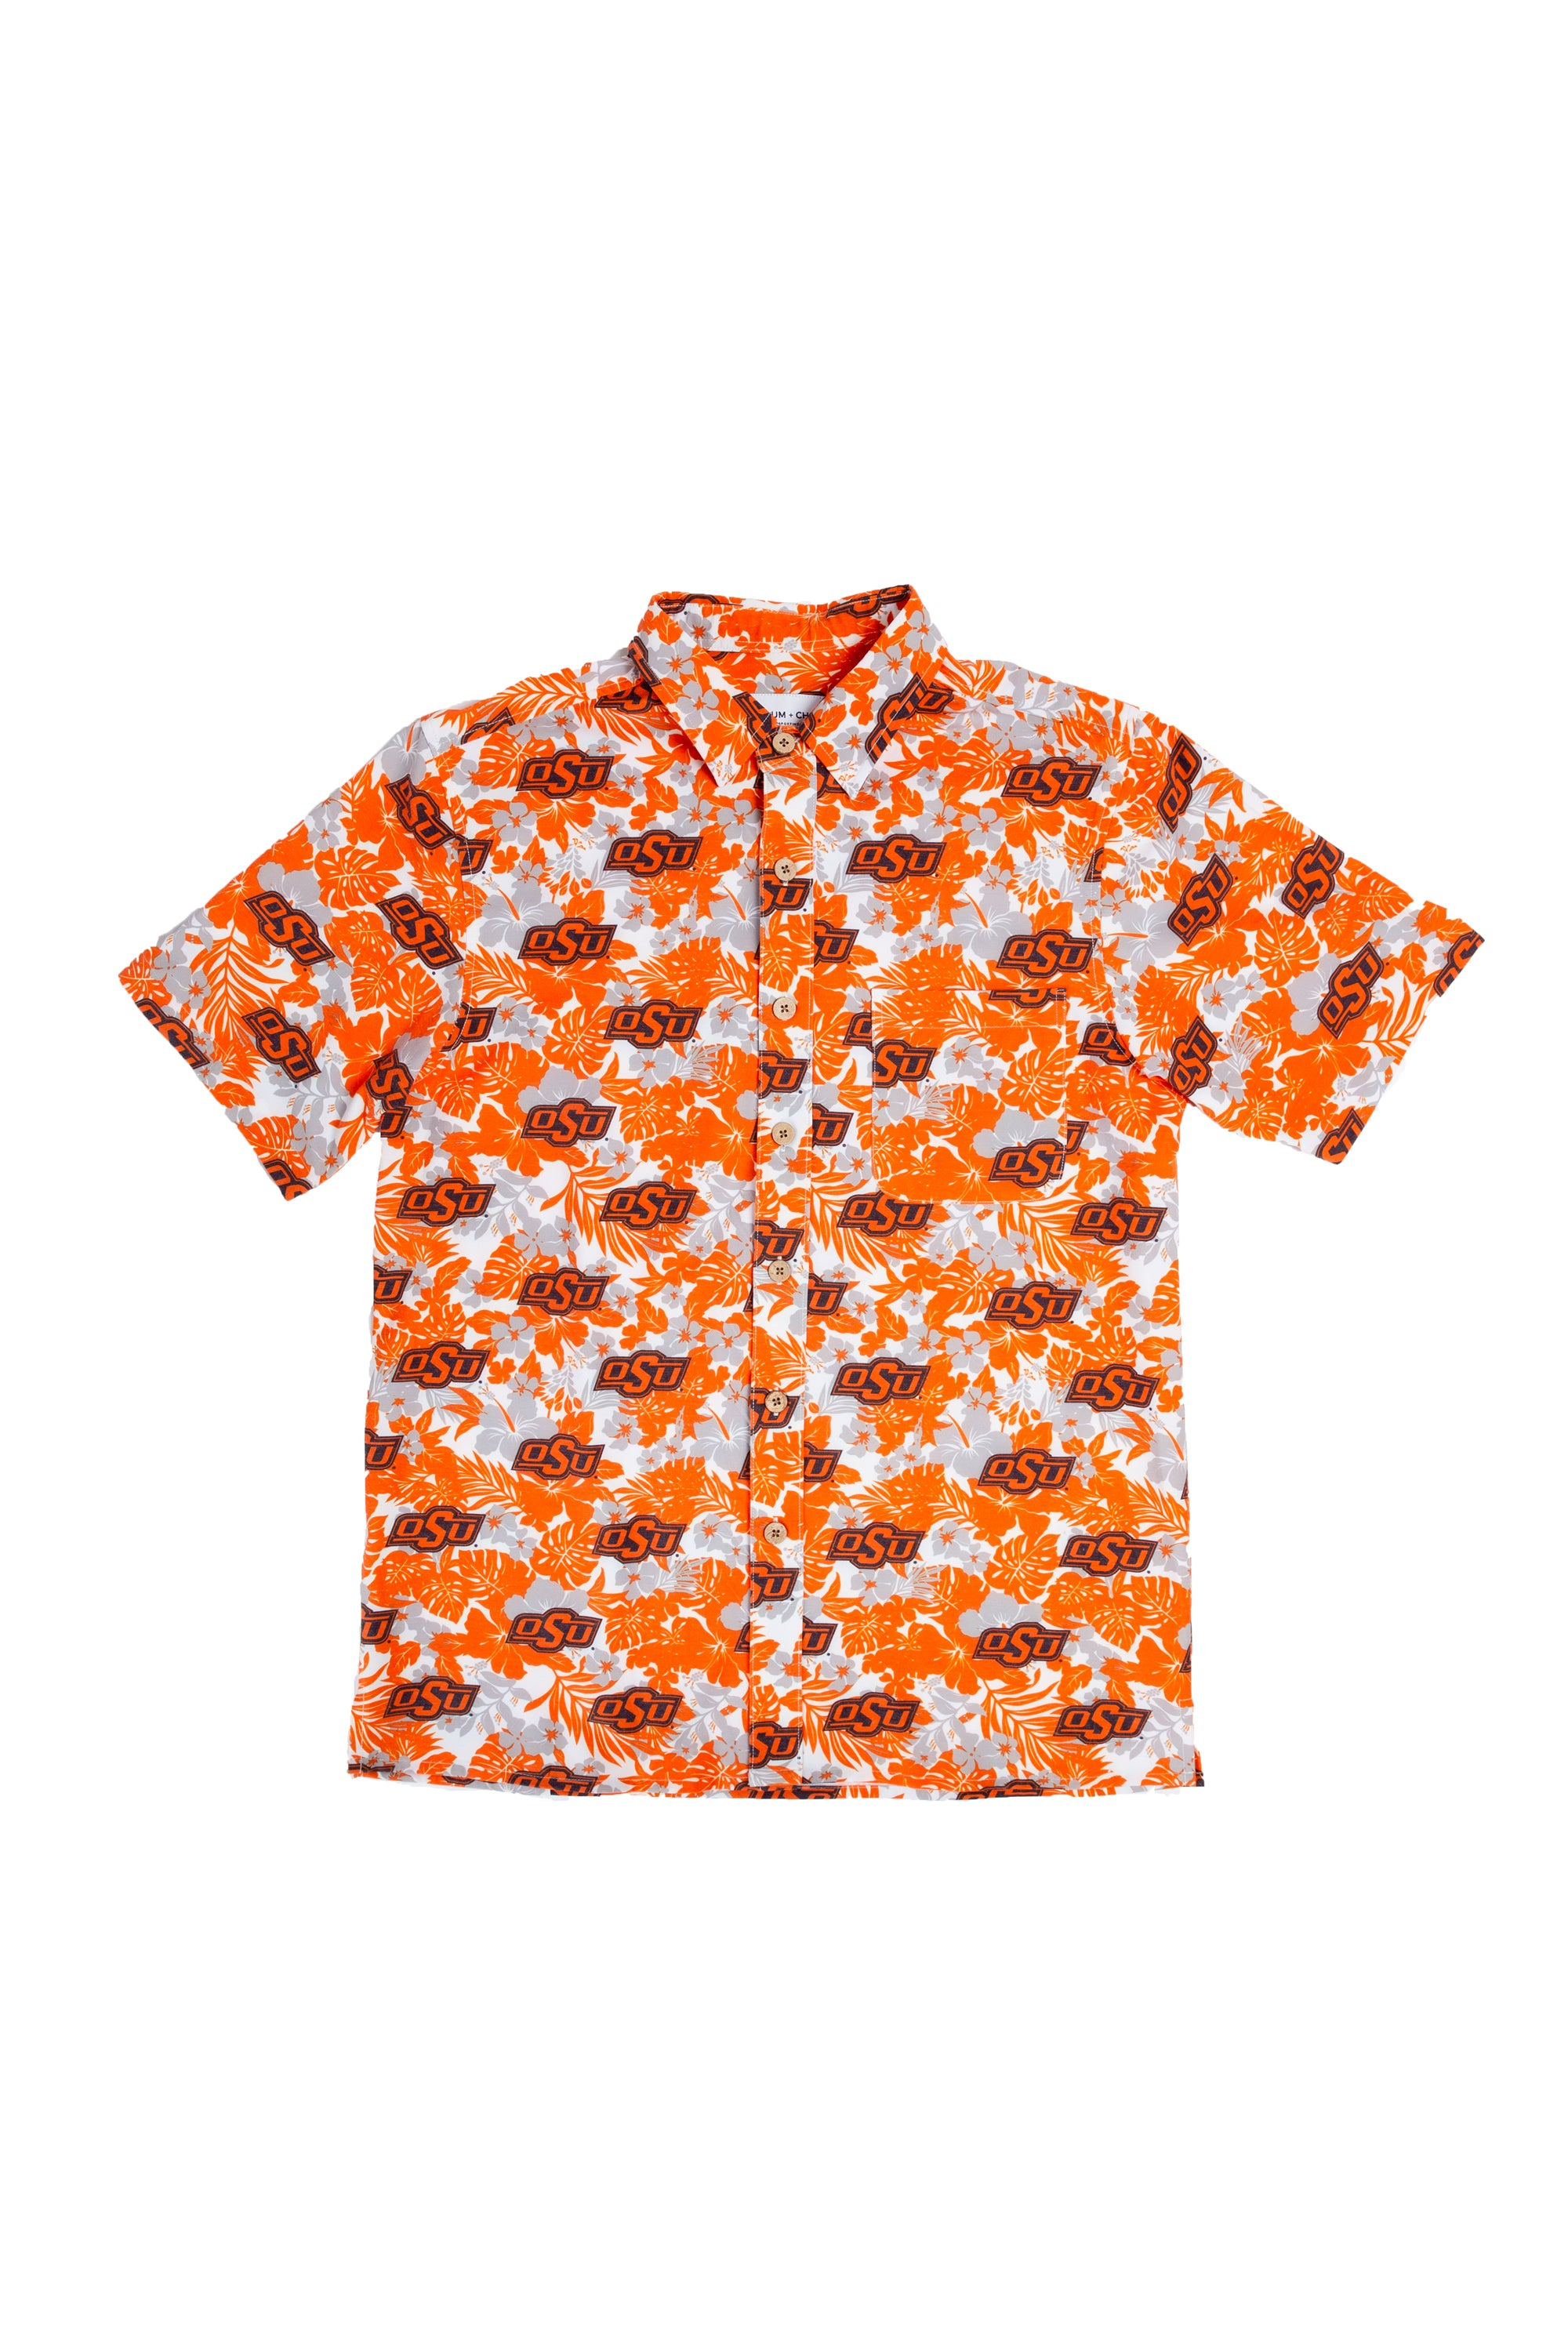 OK State Hawaiian Shirt